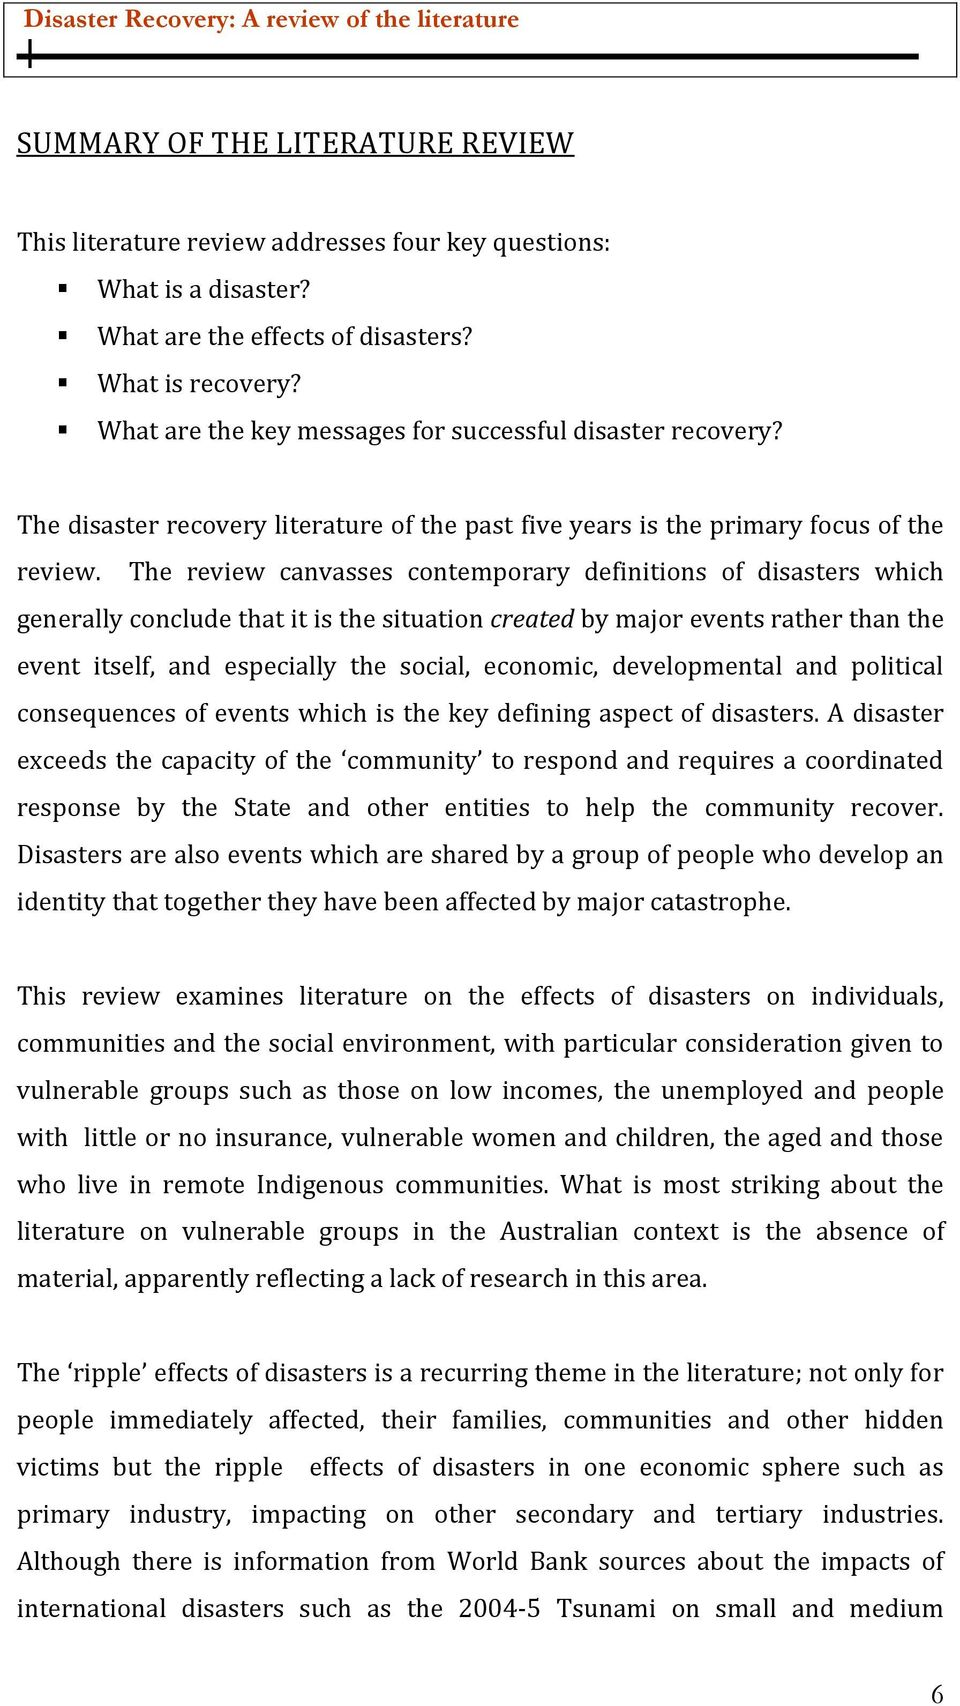 The review canvasses contemporary definitions of disasters which generally conclude that it is the situation created by major events rather than the event itself, and especially the social, economic,